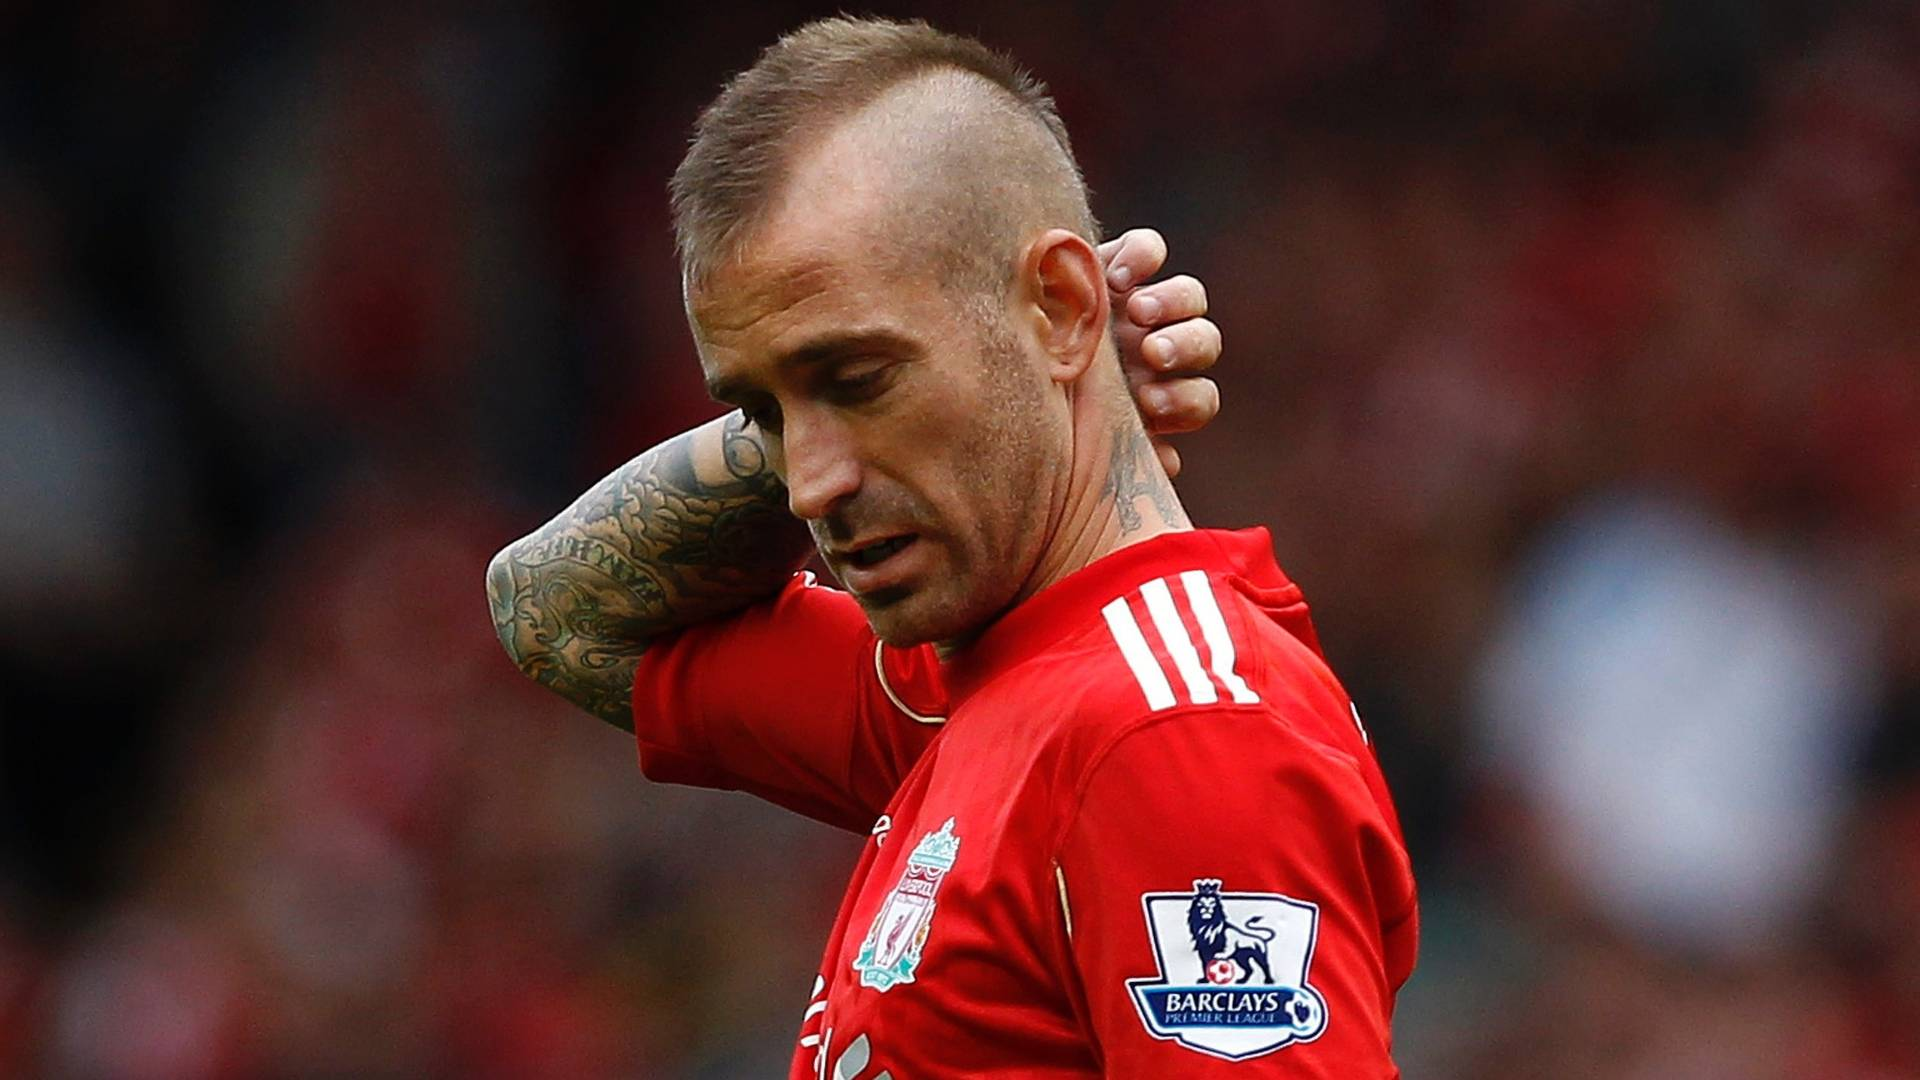 Raul Meireles durante partida do Liverpool